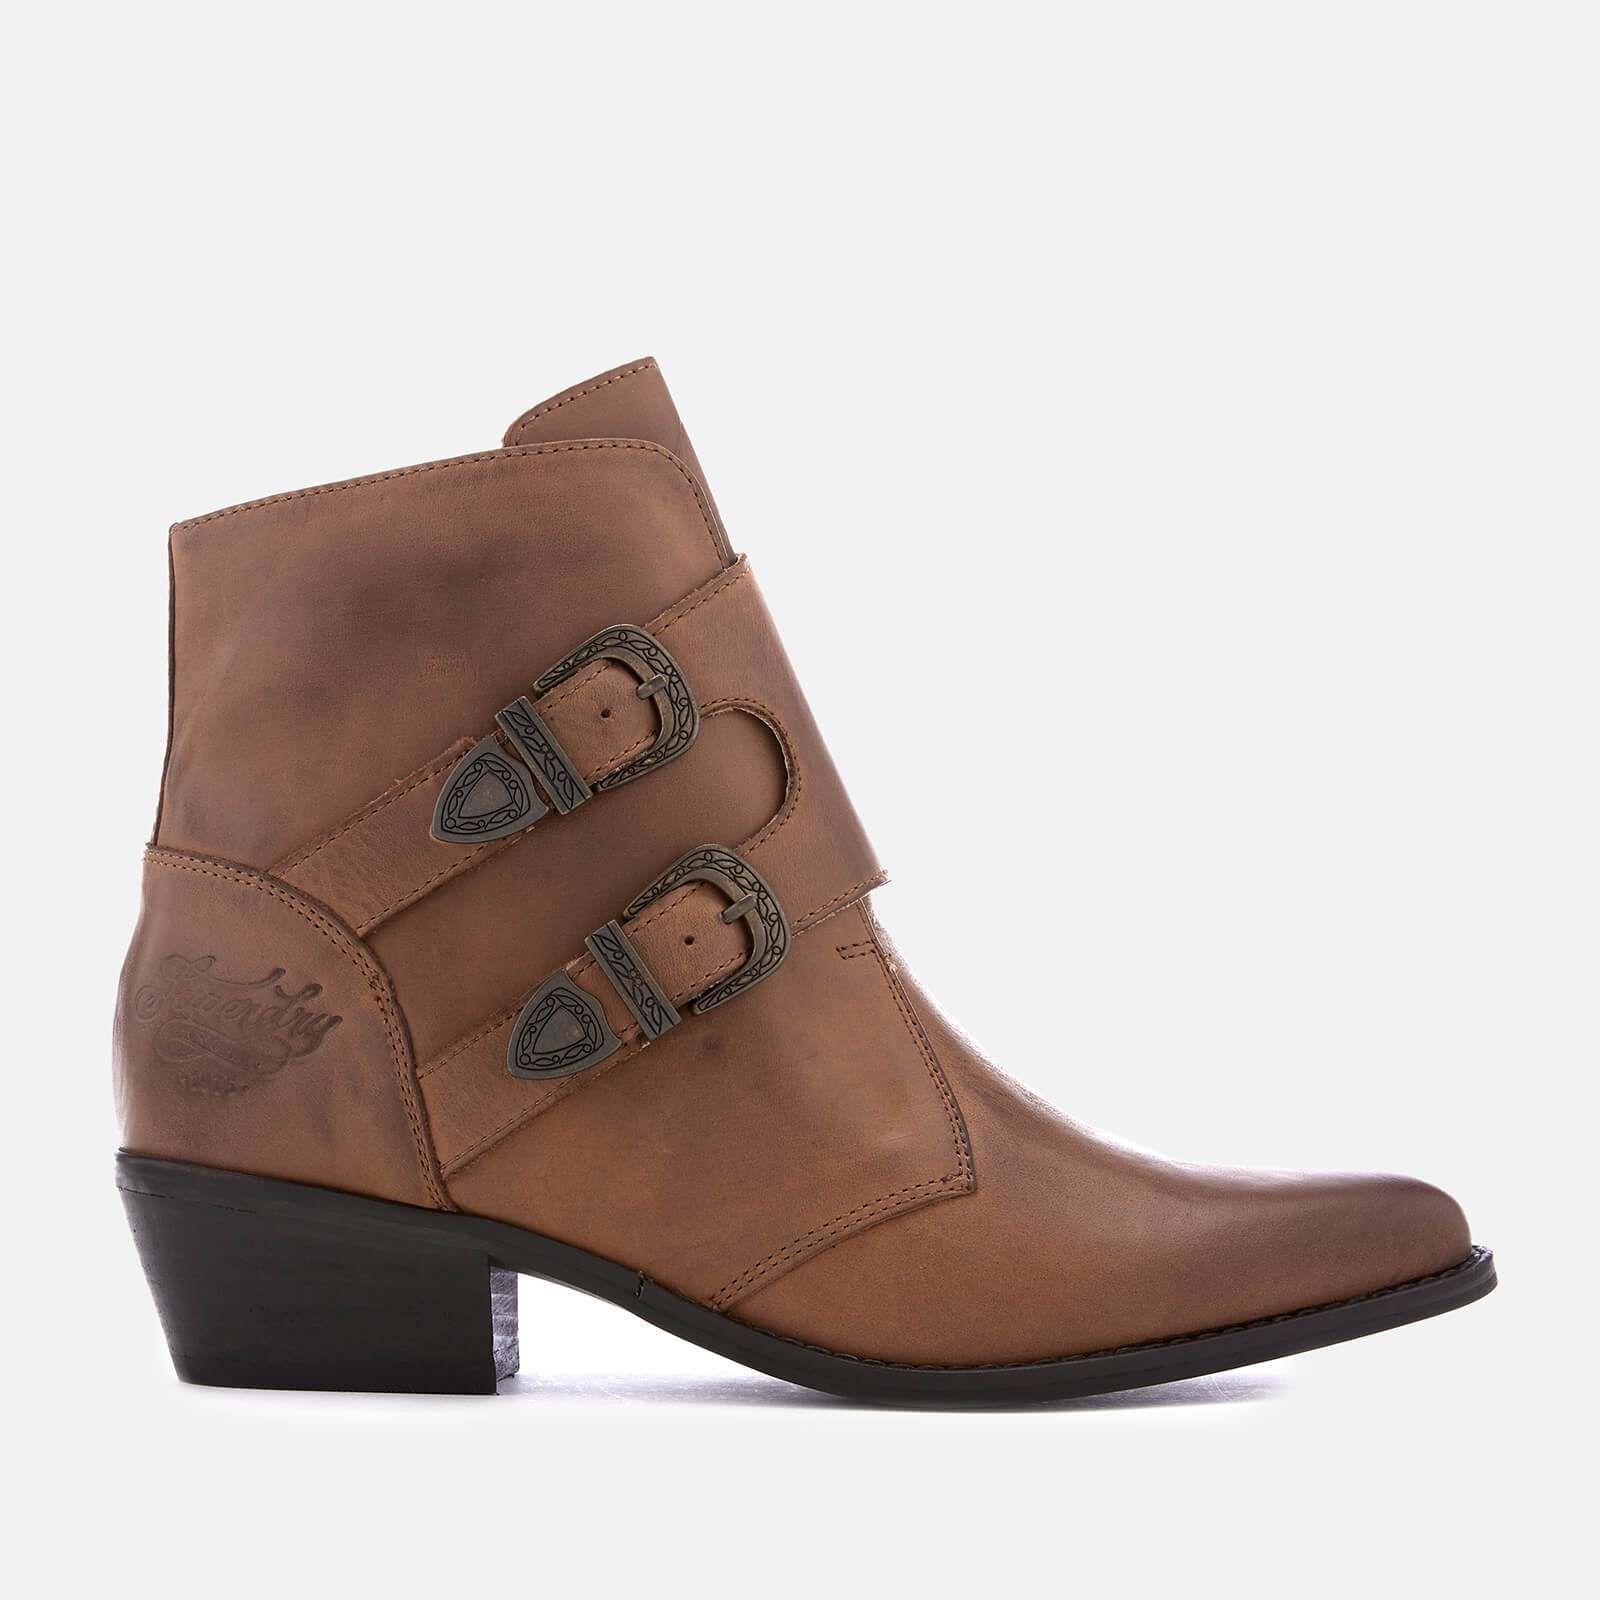 d0808b13c5f0c Superdry Women's Rodeo Monk Heeled Ankle Boots - Tan